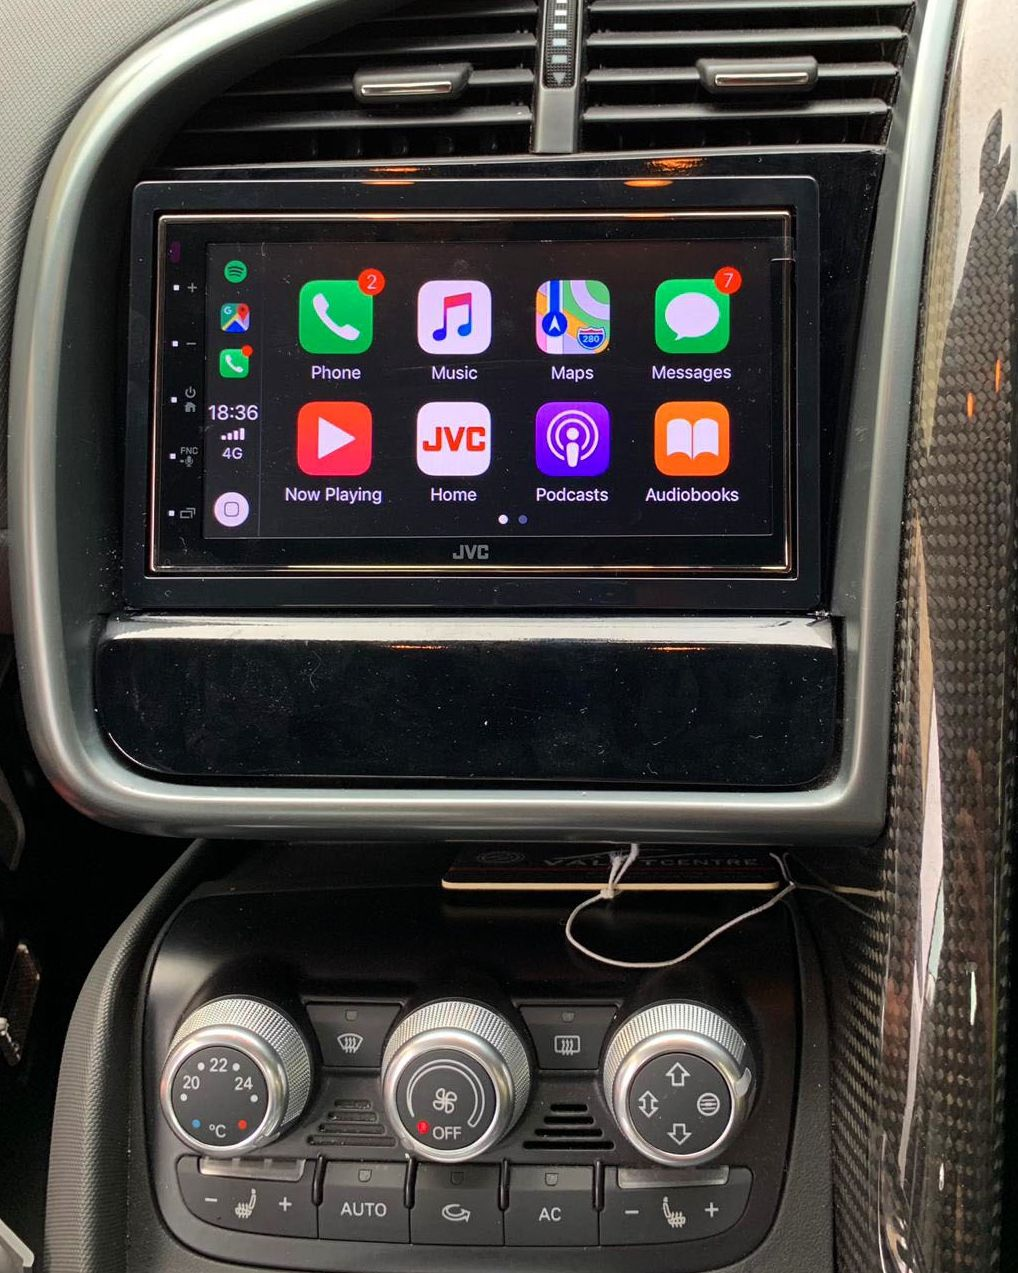 Audi R8 with new JVC apple car play and Digital Radio